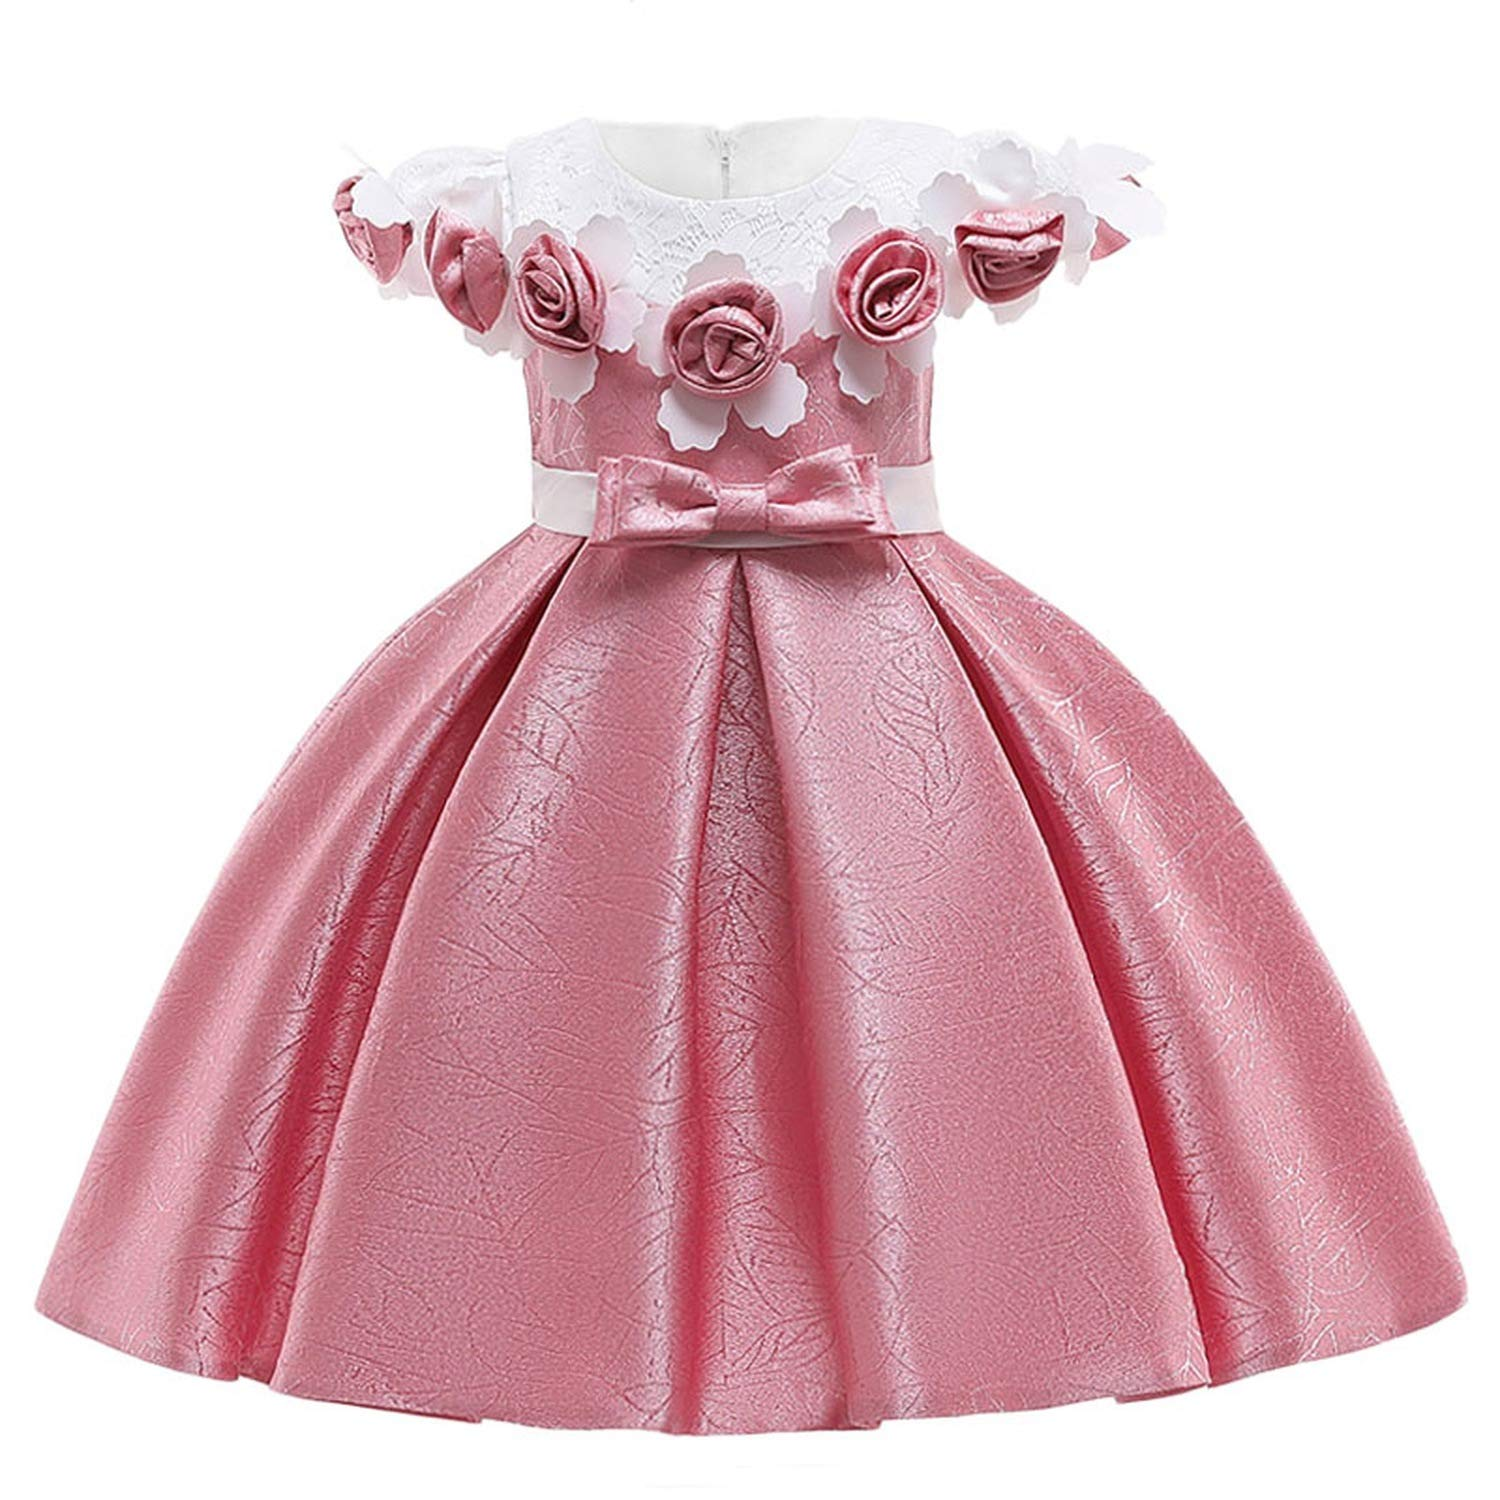 333e568fcdaf1 Amazon.com: Kids Dresses for Girls Dress Summer Elegant Children ...